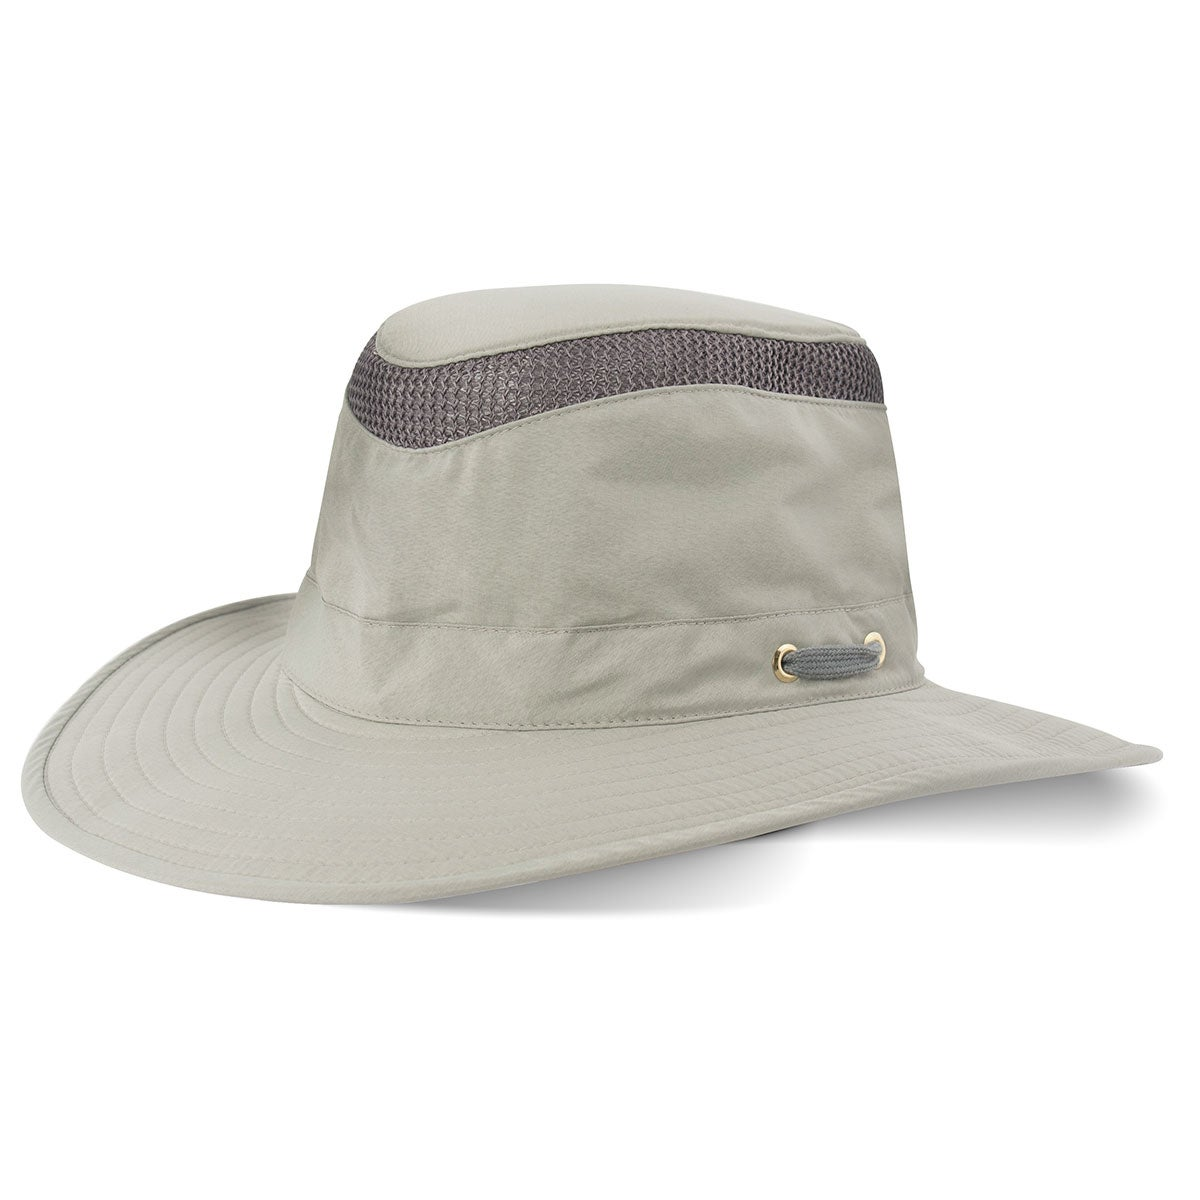 Tilley Airflo Lightweight Broad Brim Outback in Rock Face